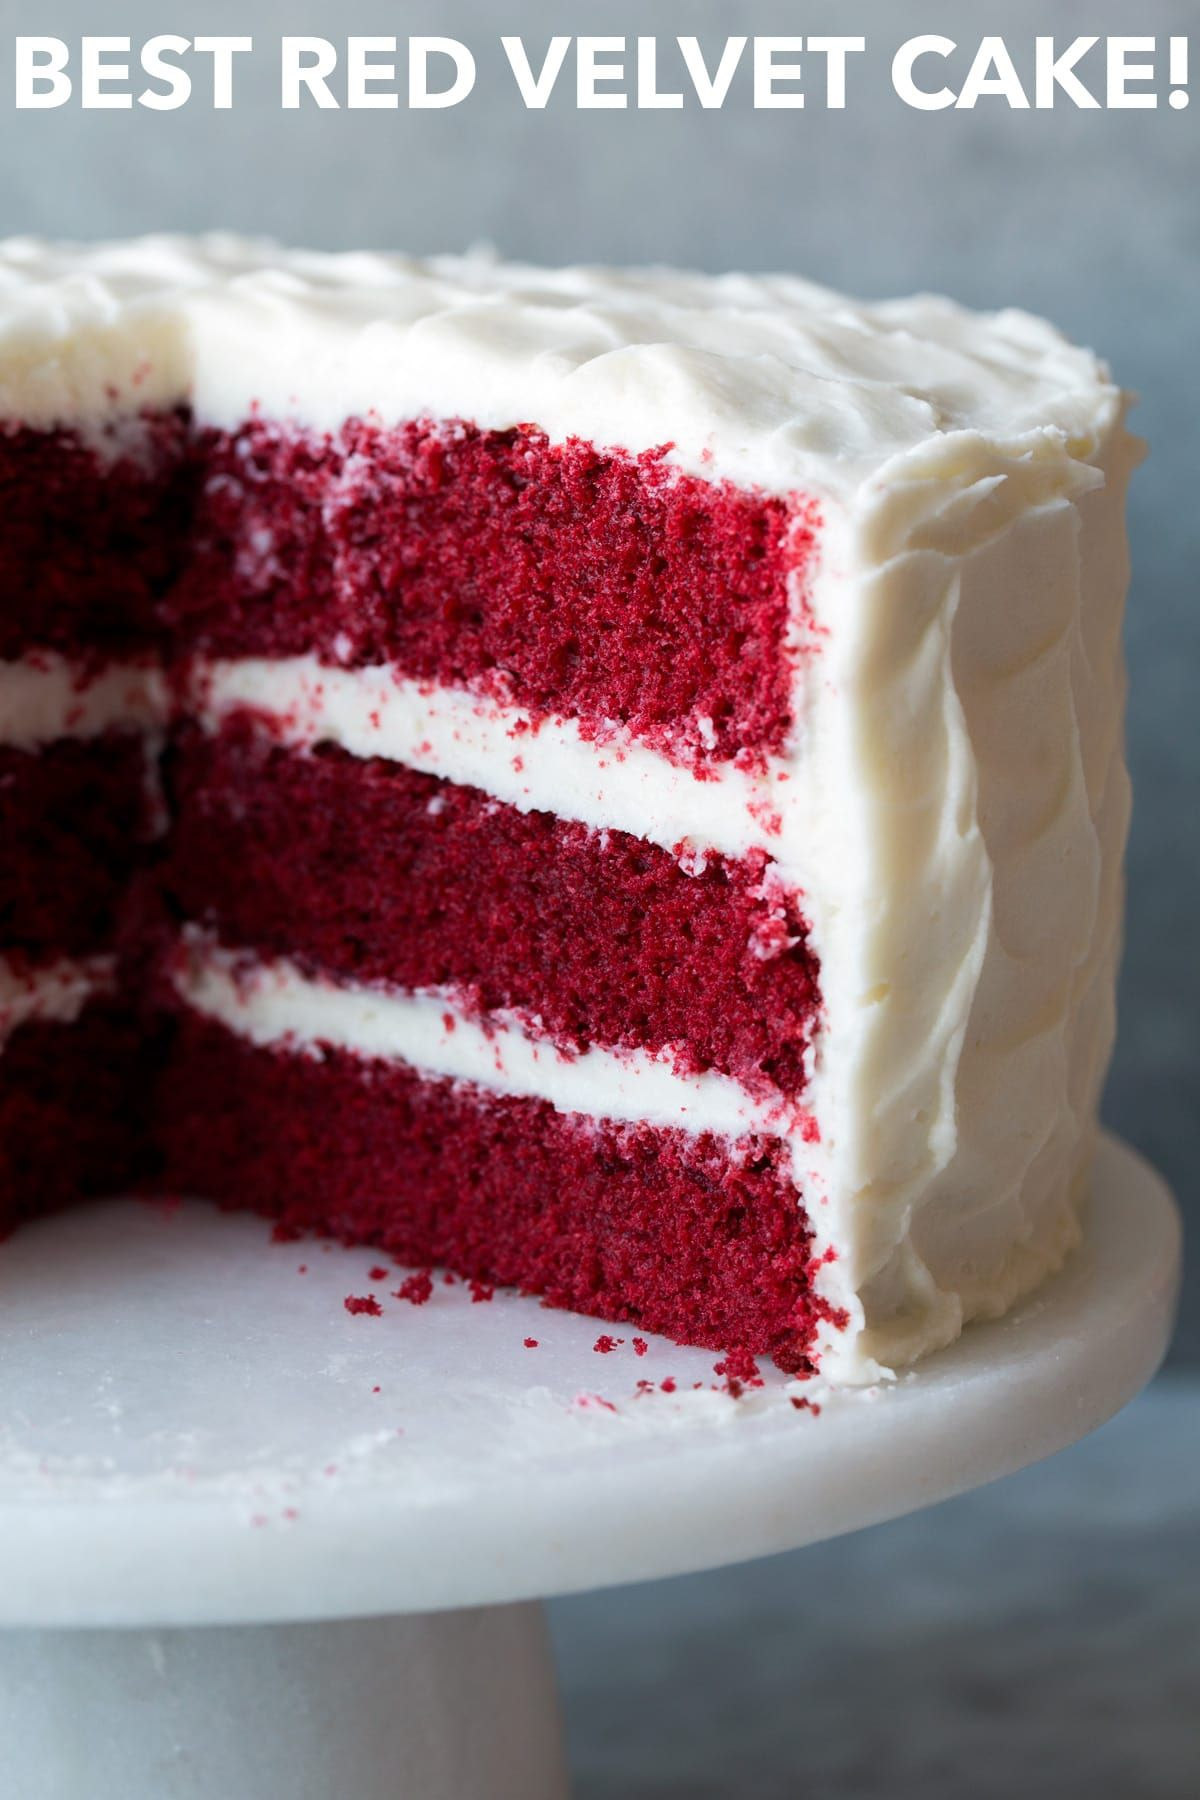 Red Velvet Cake With Cream Cheese Frosting Cooking Classy Velvet Cake Recipes Best Red Velvet Cake Red Velvet Cake Recipe